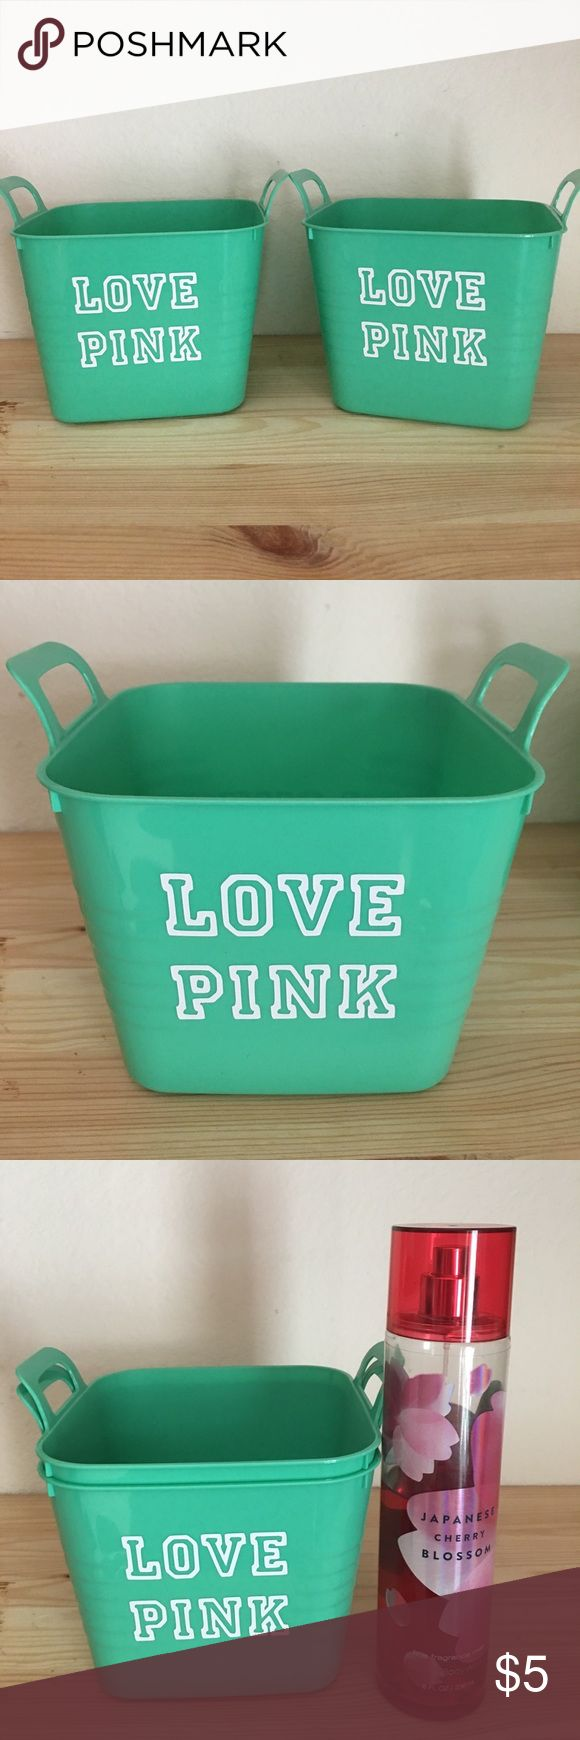 Victoria's Secret Love Pink storage bins Victoria's Secret Love Pink inspired storage bins☘️🌟☘️🌟☘️🌟☘️🌟Homemade with vinyl stickers..body spray not included PINK Victoria's Secret Accessories